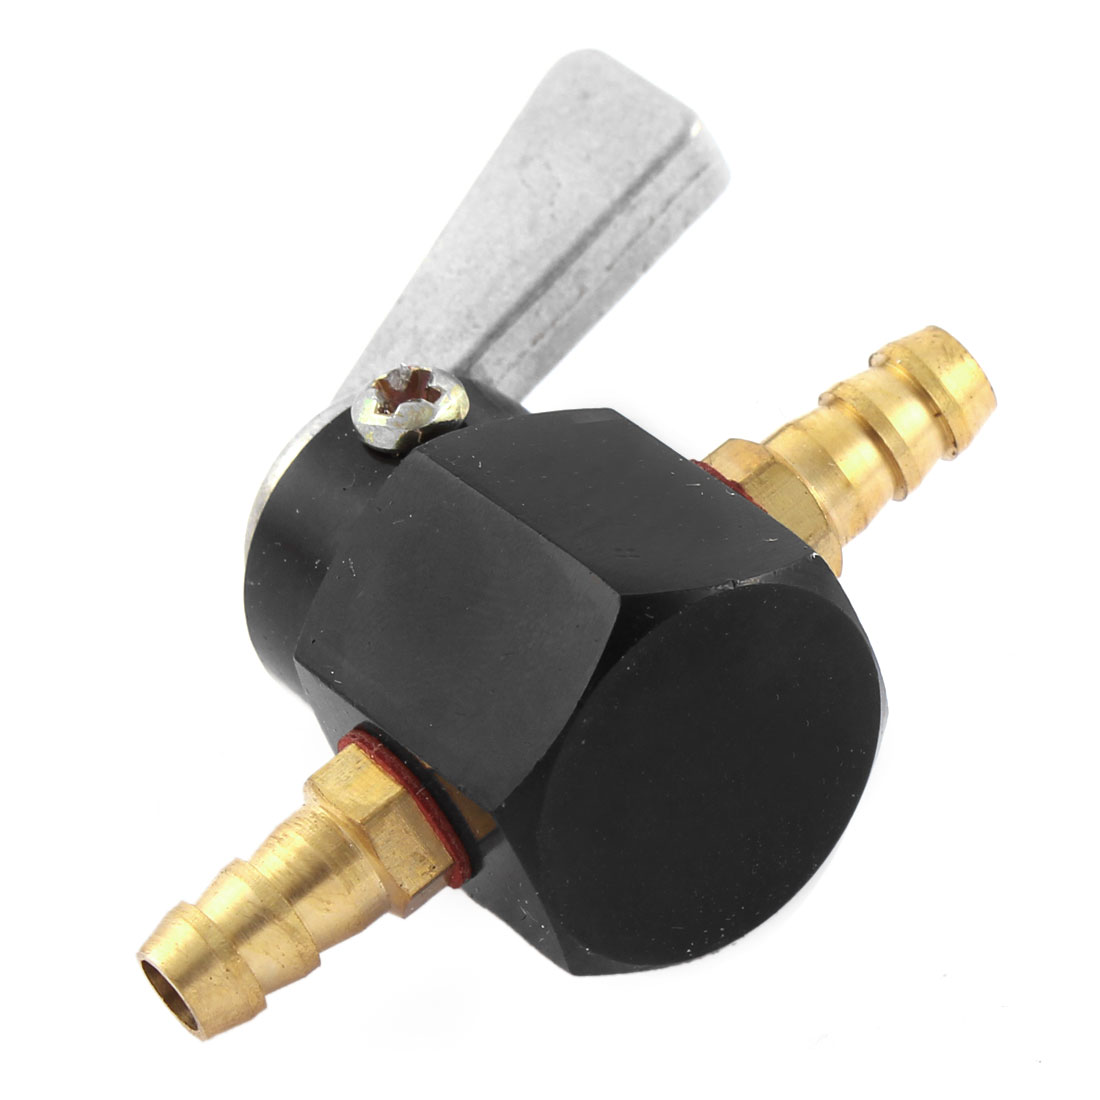 4mm Dia Black Fuel Gas Petcock Valve Switch for Motorcycle - image 1 of 3